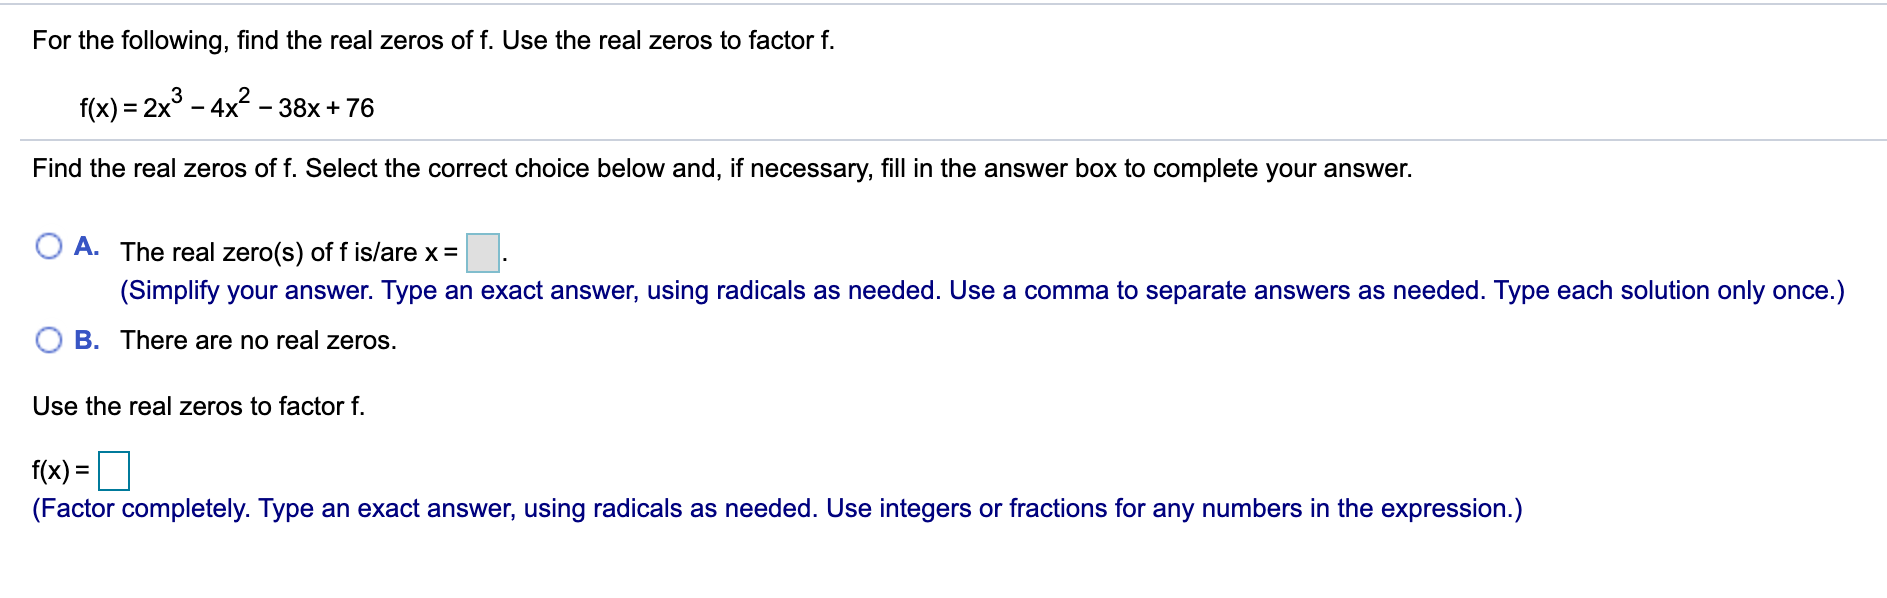 For the following, find the real zeros of f. Use the real zeros to factor f. f(x) = 2x° - 4x - 38x + 76 %3D Find the real zeros of f. Select the correct choice below and, if necessary, fill in the answer box to complete your answer. A. The real zero(s) of f is/are x = (Simplify your answer. Type an exact answer, using radicals as needed. Use a comma to separate answers as needed. Type each solution only once.) B. There are no real zeros. Use the real zeros to factor f. f(x) = (Factor completely. Type an exact answer, using radicals as needed. Use integers or fractions for any numbers in the expression.)